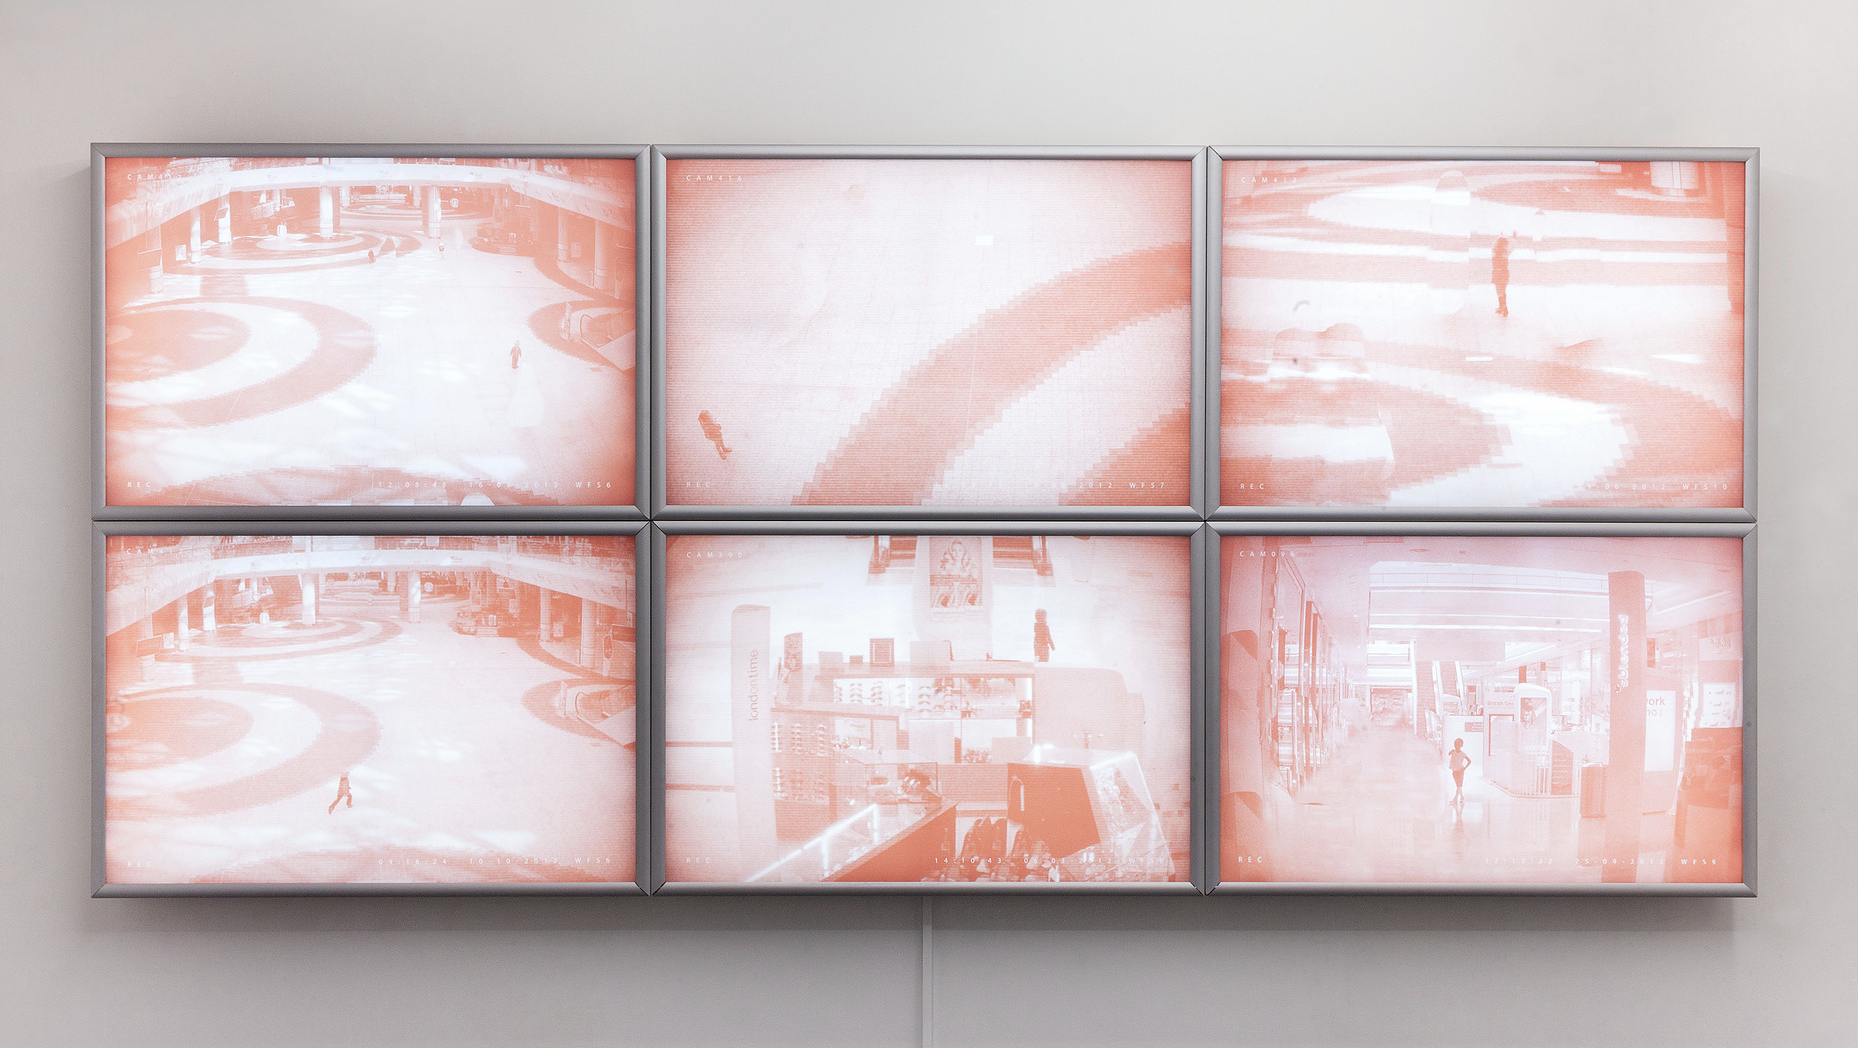 Crudely Erased Adults - Installation view at Carrol/Fletcher in London